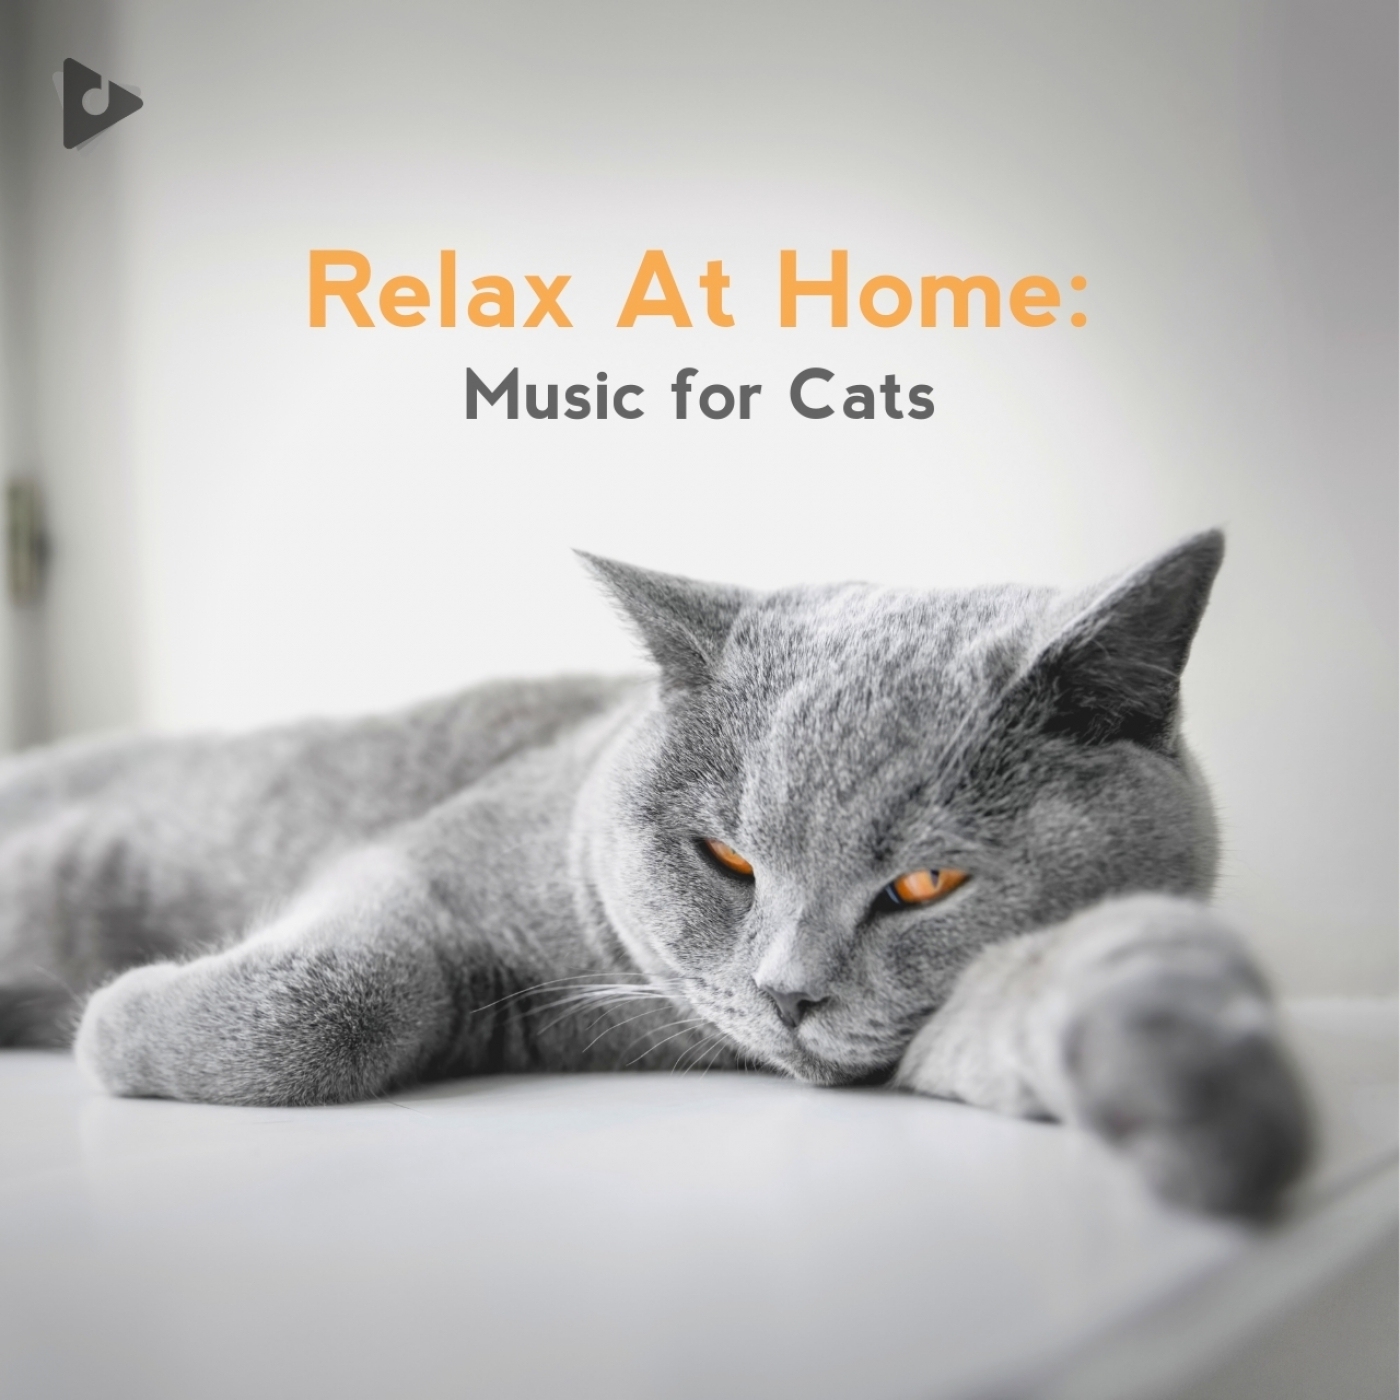 Stay-at-Home: Music for Cats